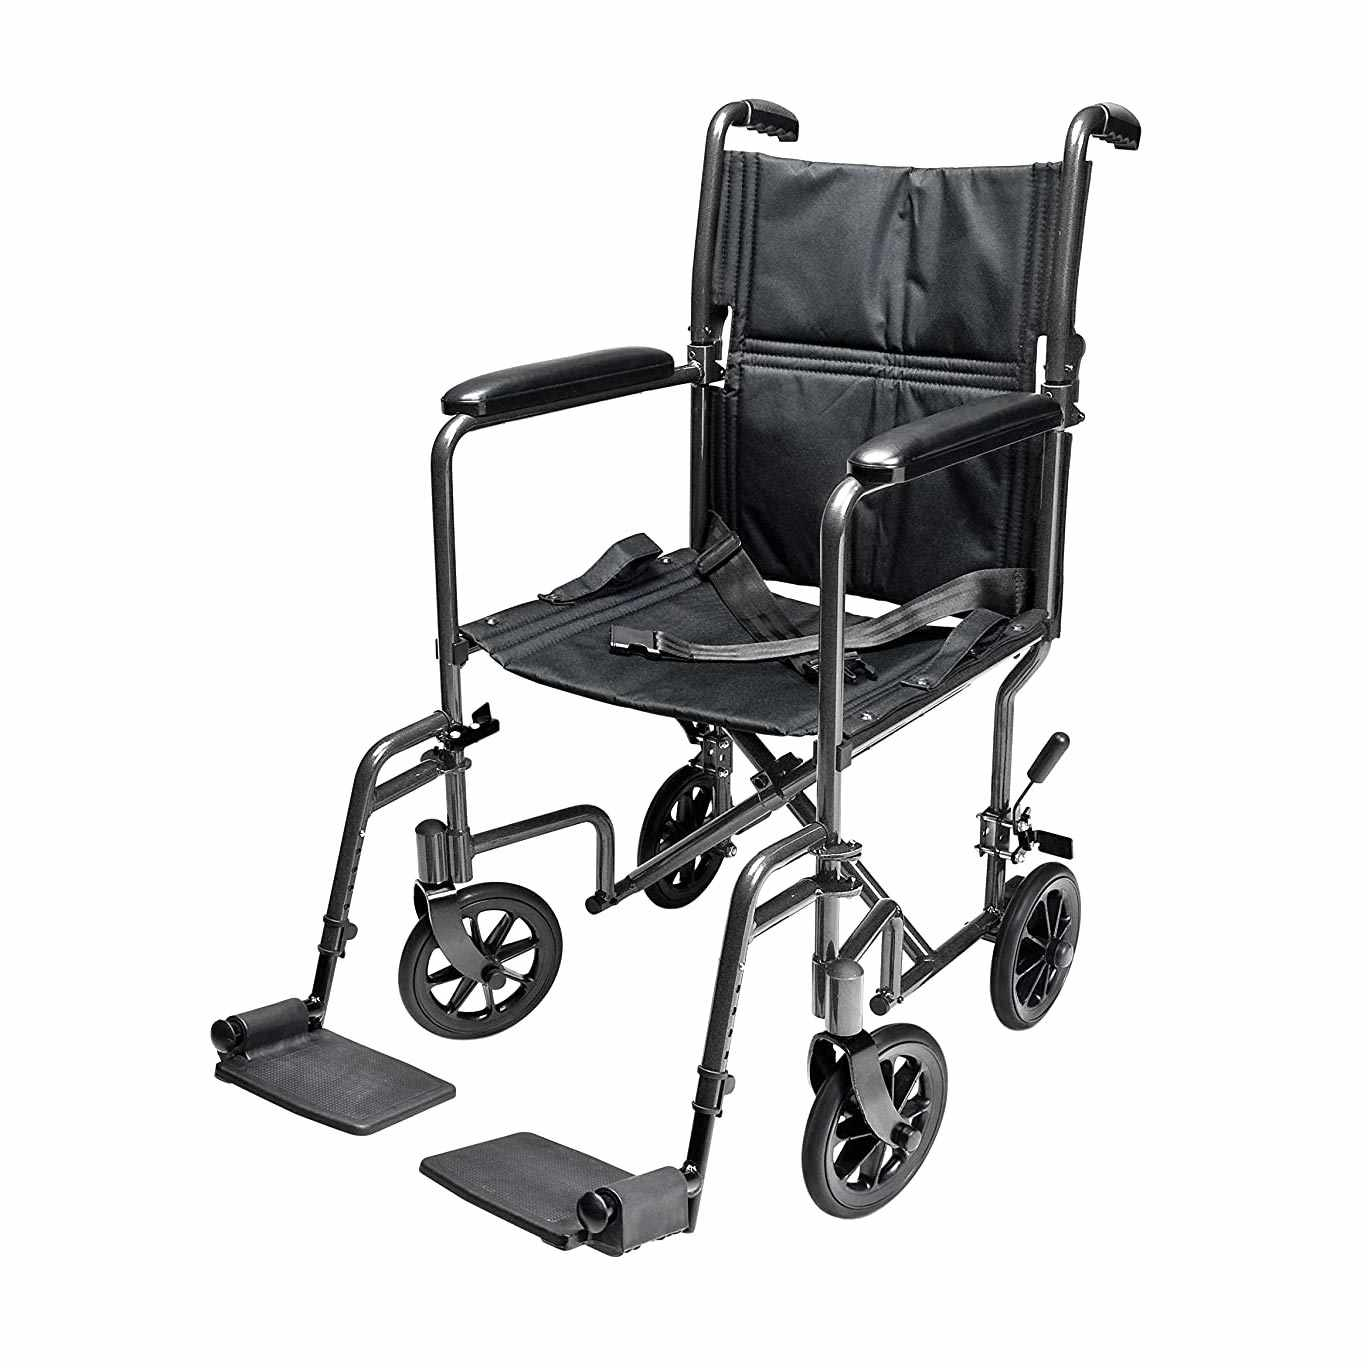 Everest & Jennings steel transport chair, EJ795-1